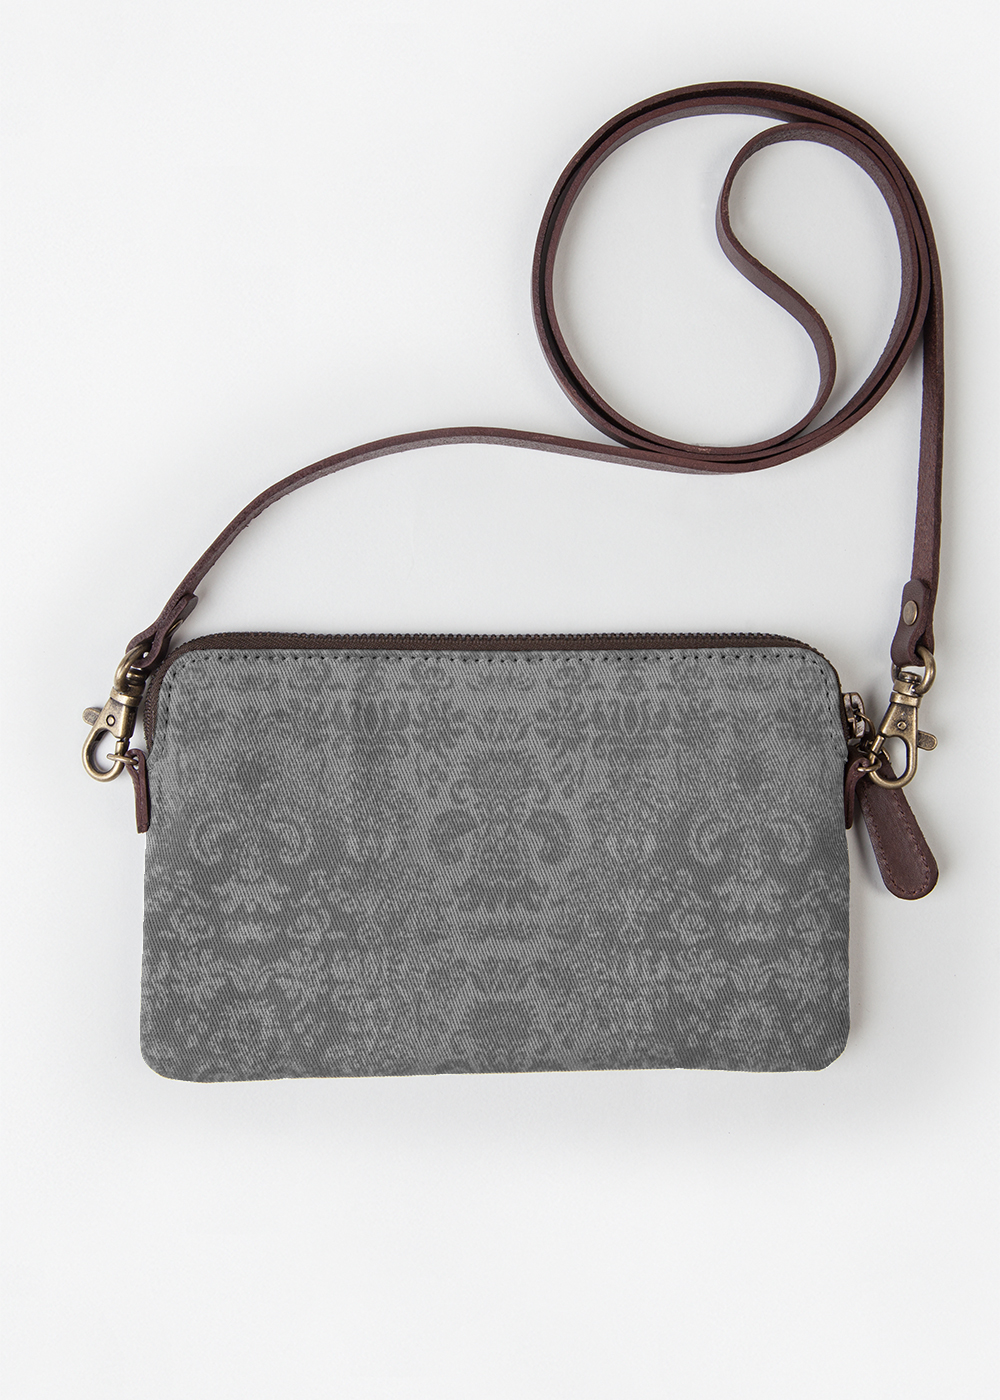 Statement Bag - Shimmer by VIDA VIDA ZrInhb